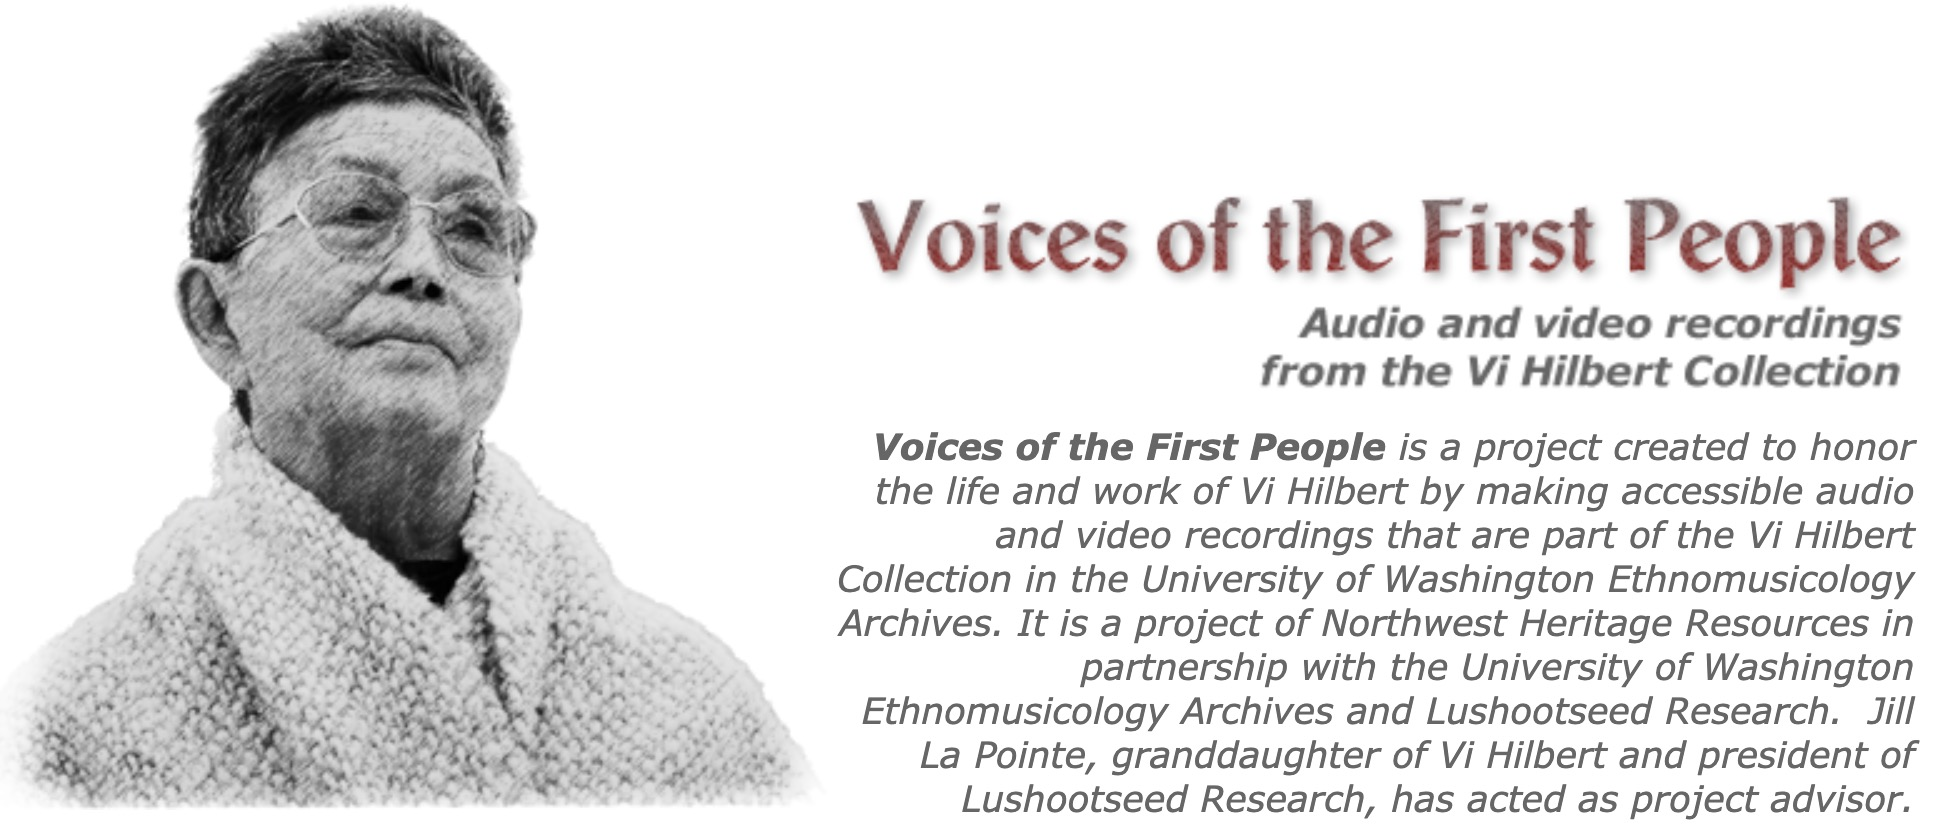 Photo of Vi Hilbert with the following text: Voices of the First People: Audio and video recordings from the Vi Hilbert Collection. Voices of the First People is a project created to honor the life and work of Vi Hilbert by making accessible audio and video recordings that are part of the Vi Hilbert Collection in the University of Washington Ethnomusicology Archives. It is a Project of Northwest Heritage Resources in partnership with the University of Washington Ethnomusicology Archives and Lushootseed Research. Jill La Point, granddaughter of Vi Hilbert and president of Lushootseed Research, has acted as project advisor.